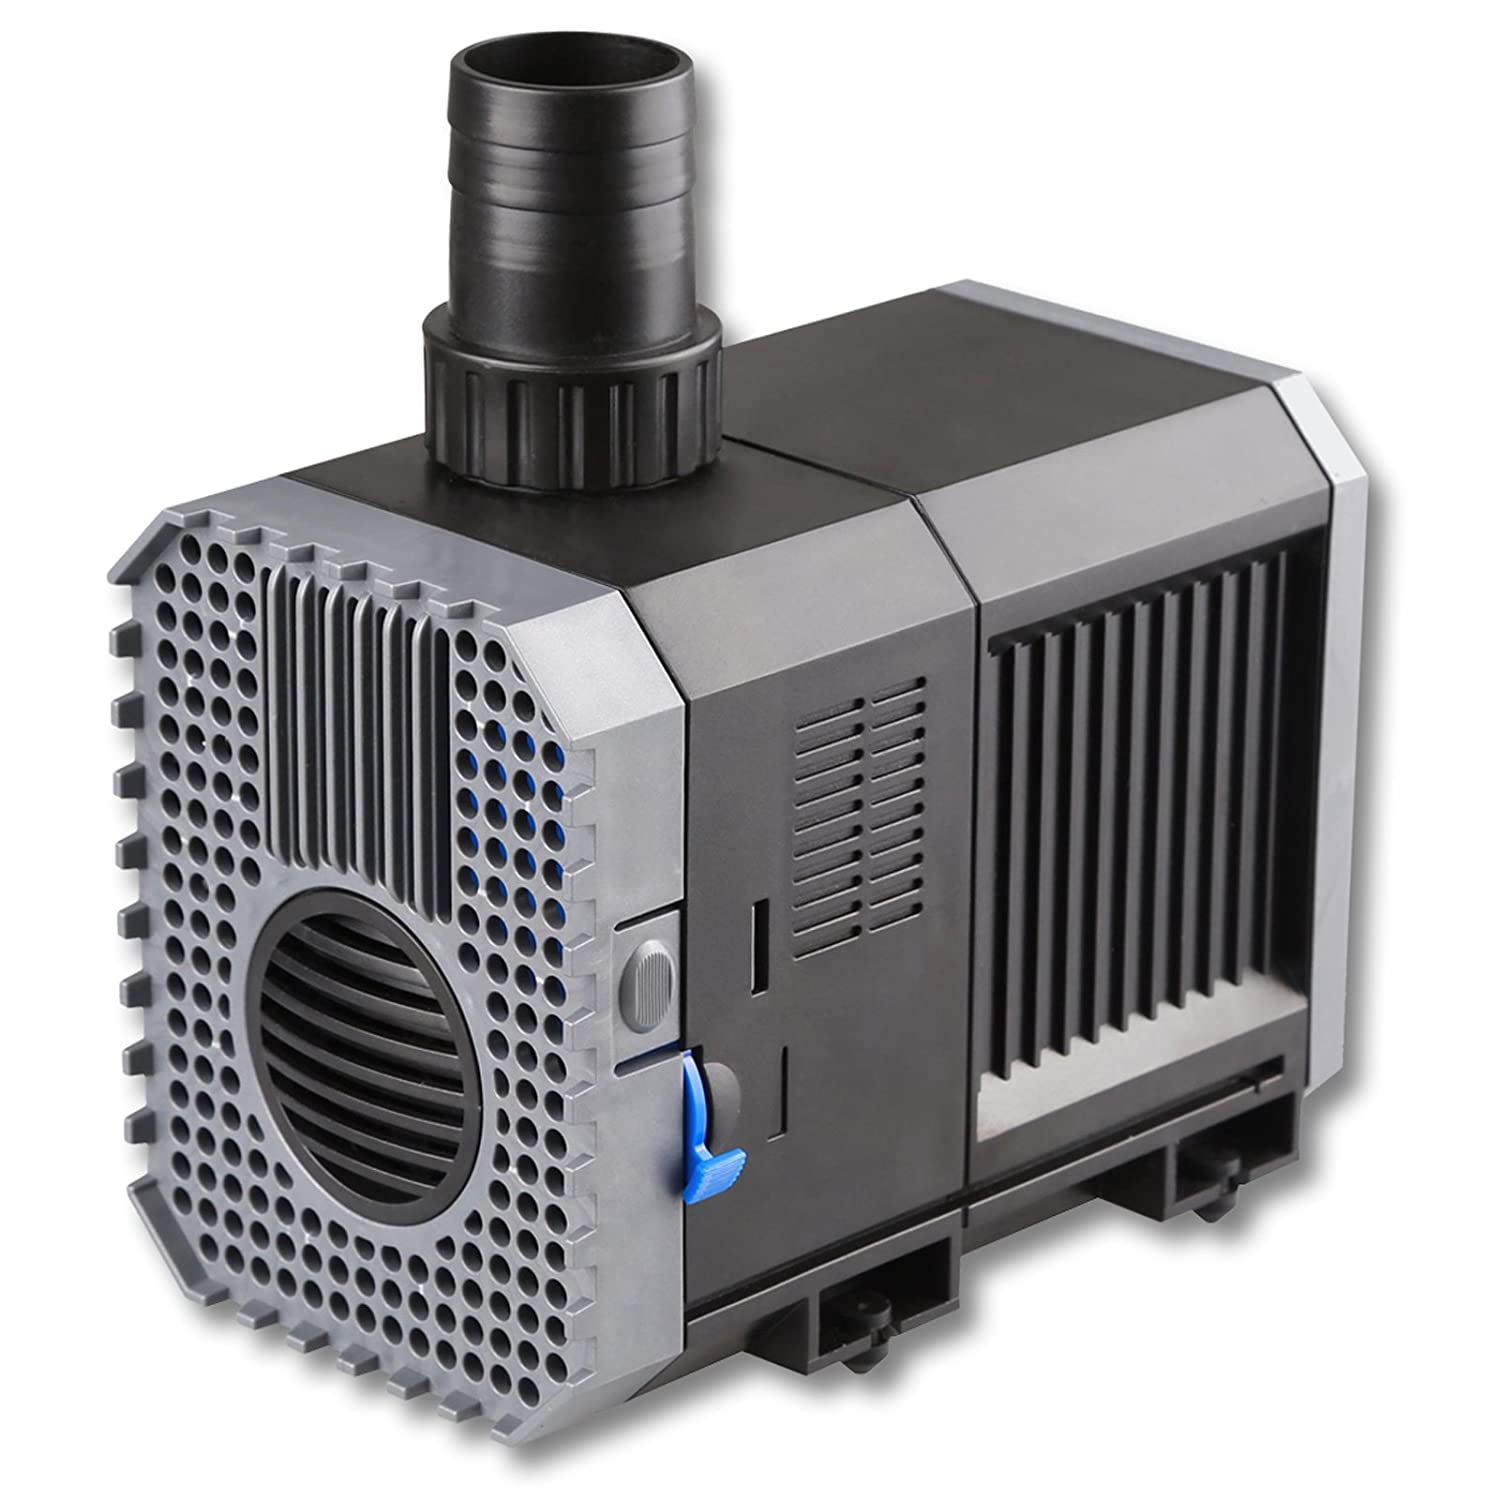 CHJ-5000 ECO Pond Pump Is SunSun 5000L/H with Only 80 W